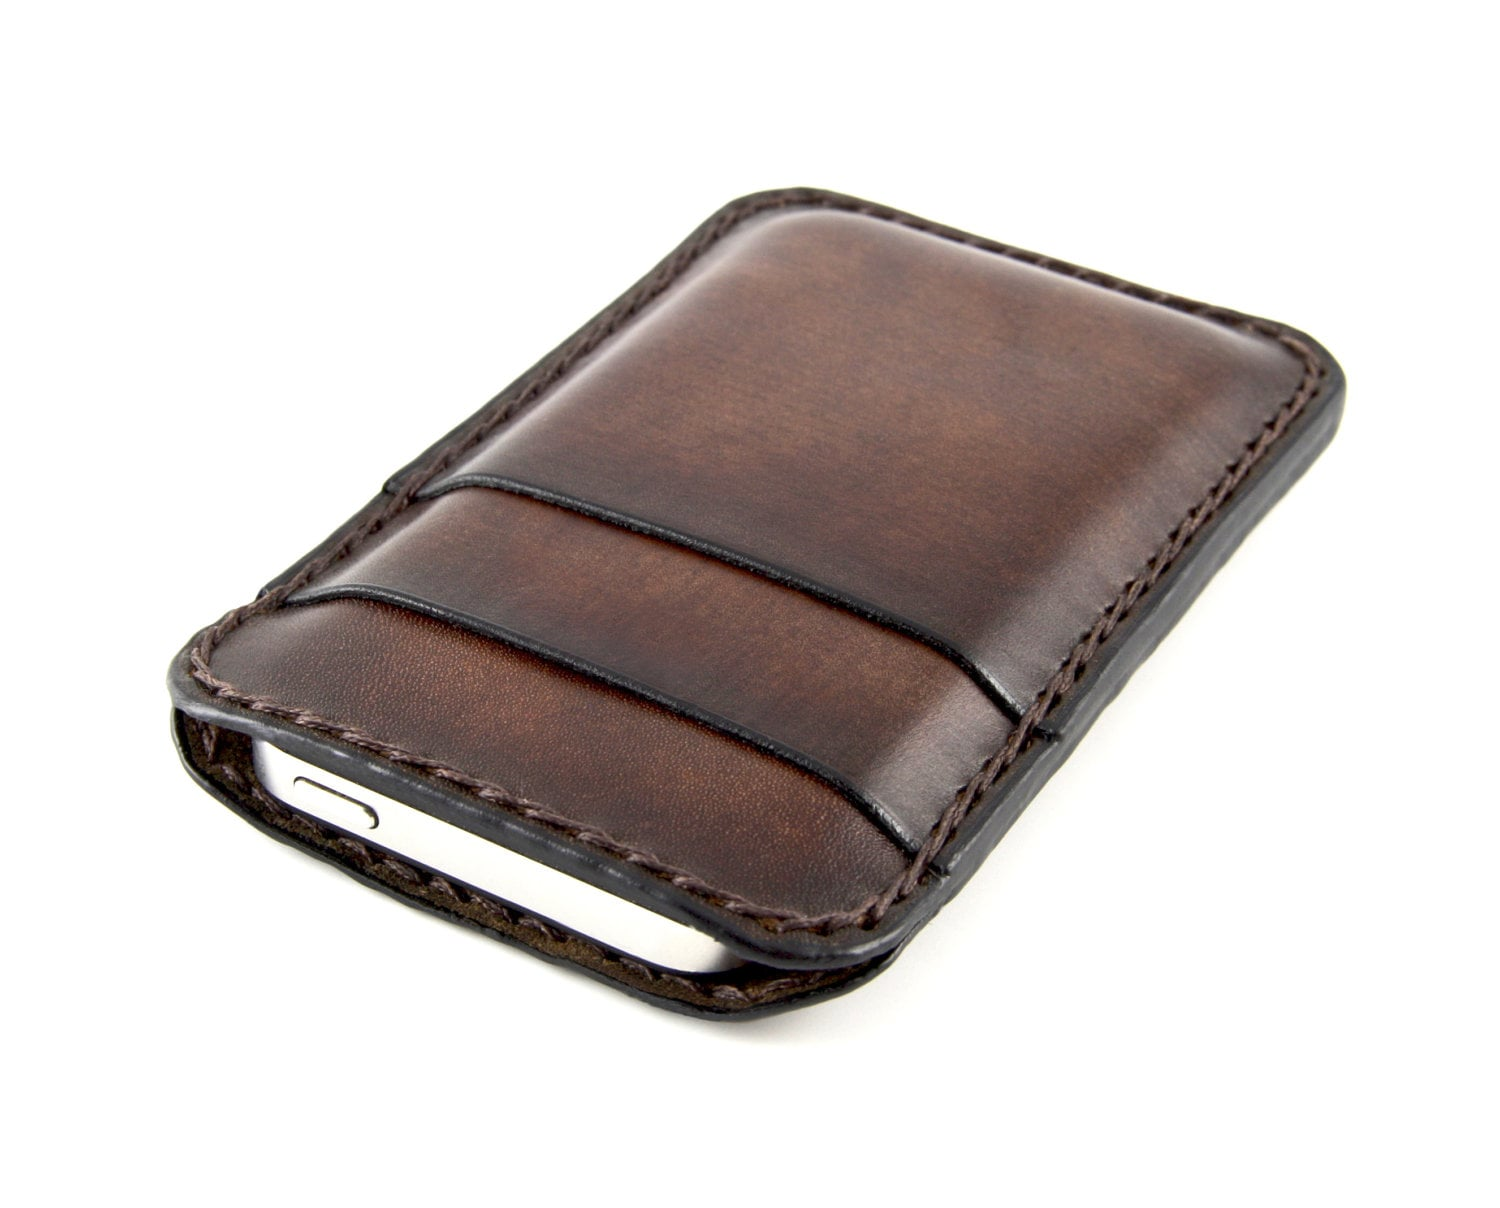 leather iphone 5 case iphone iphone 5 leather 3721